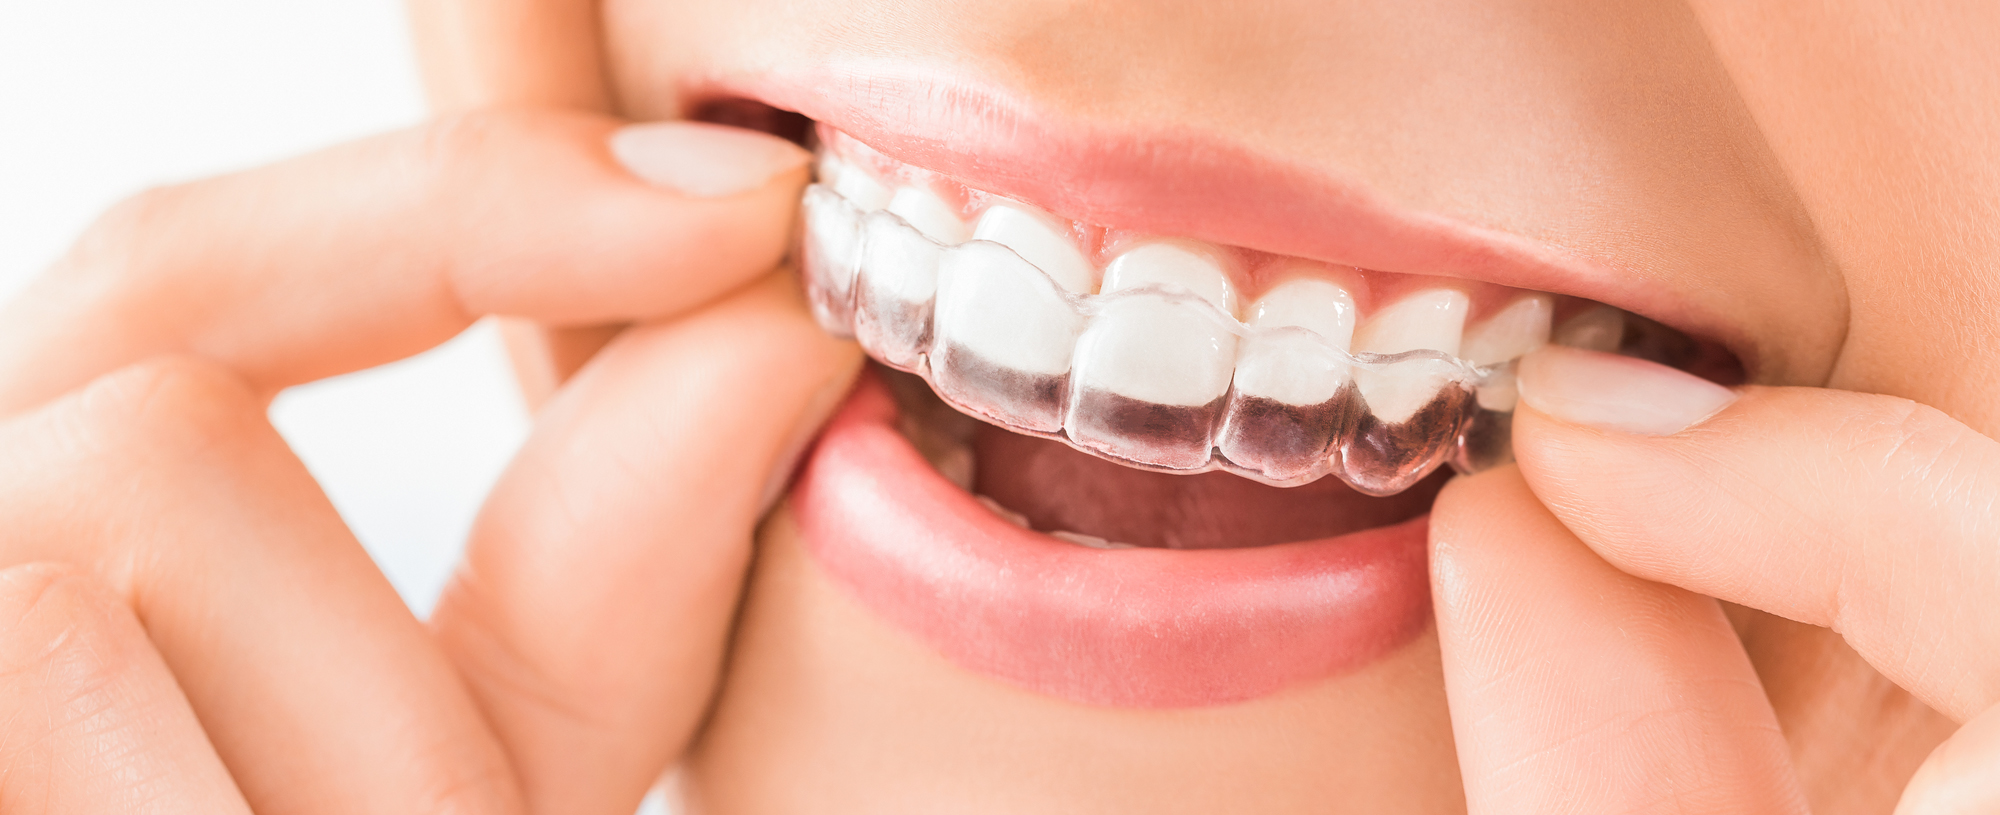 a close up of a smile showing Invisalign clear-aligner